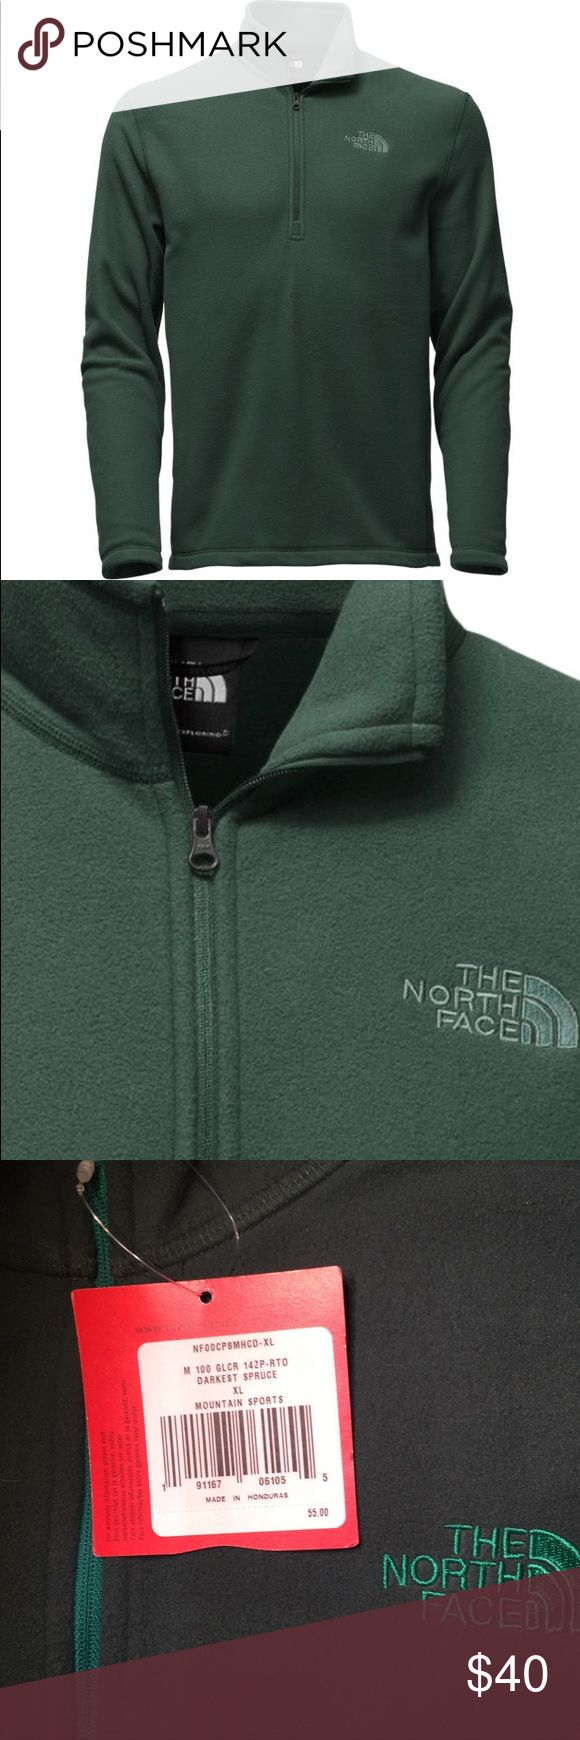 The North Face M100 Glacier XL NWT Darkest Spruce New with tags Men's XL The North Face M 100 Glacier Fleece Pullover in Darkest Spruce. Regulate your body temperature after fast hikes or on cool-weather runs with a durable, yet lightweight 100-weight fleece that easily transitions through the seasons. The quarter-zip design makes it easy to ventilate this breathable pullover. The North Face Jackets & Coats